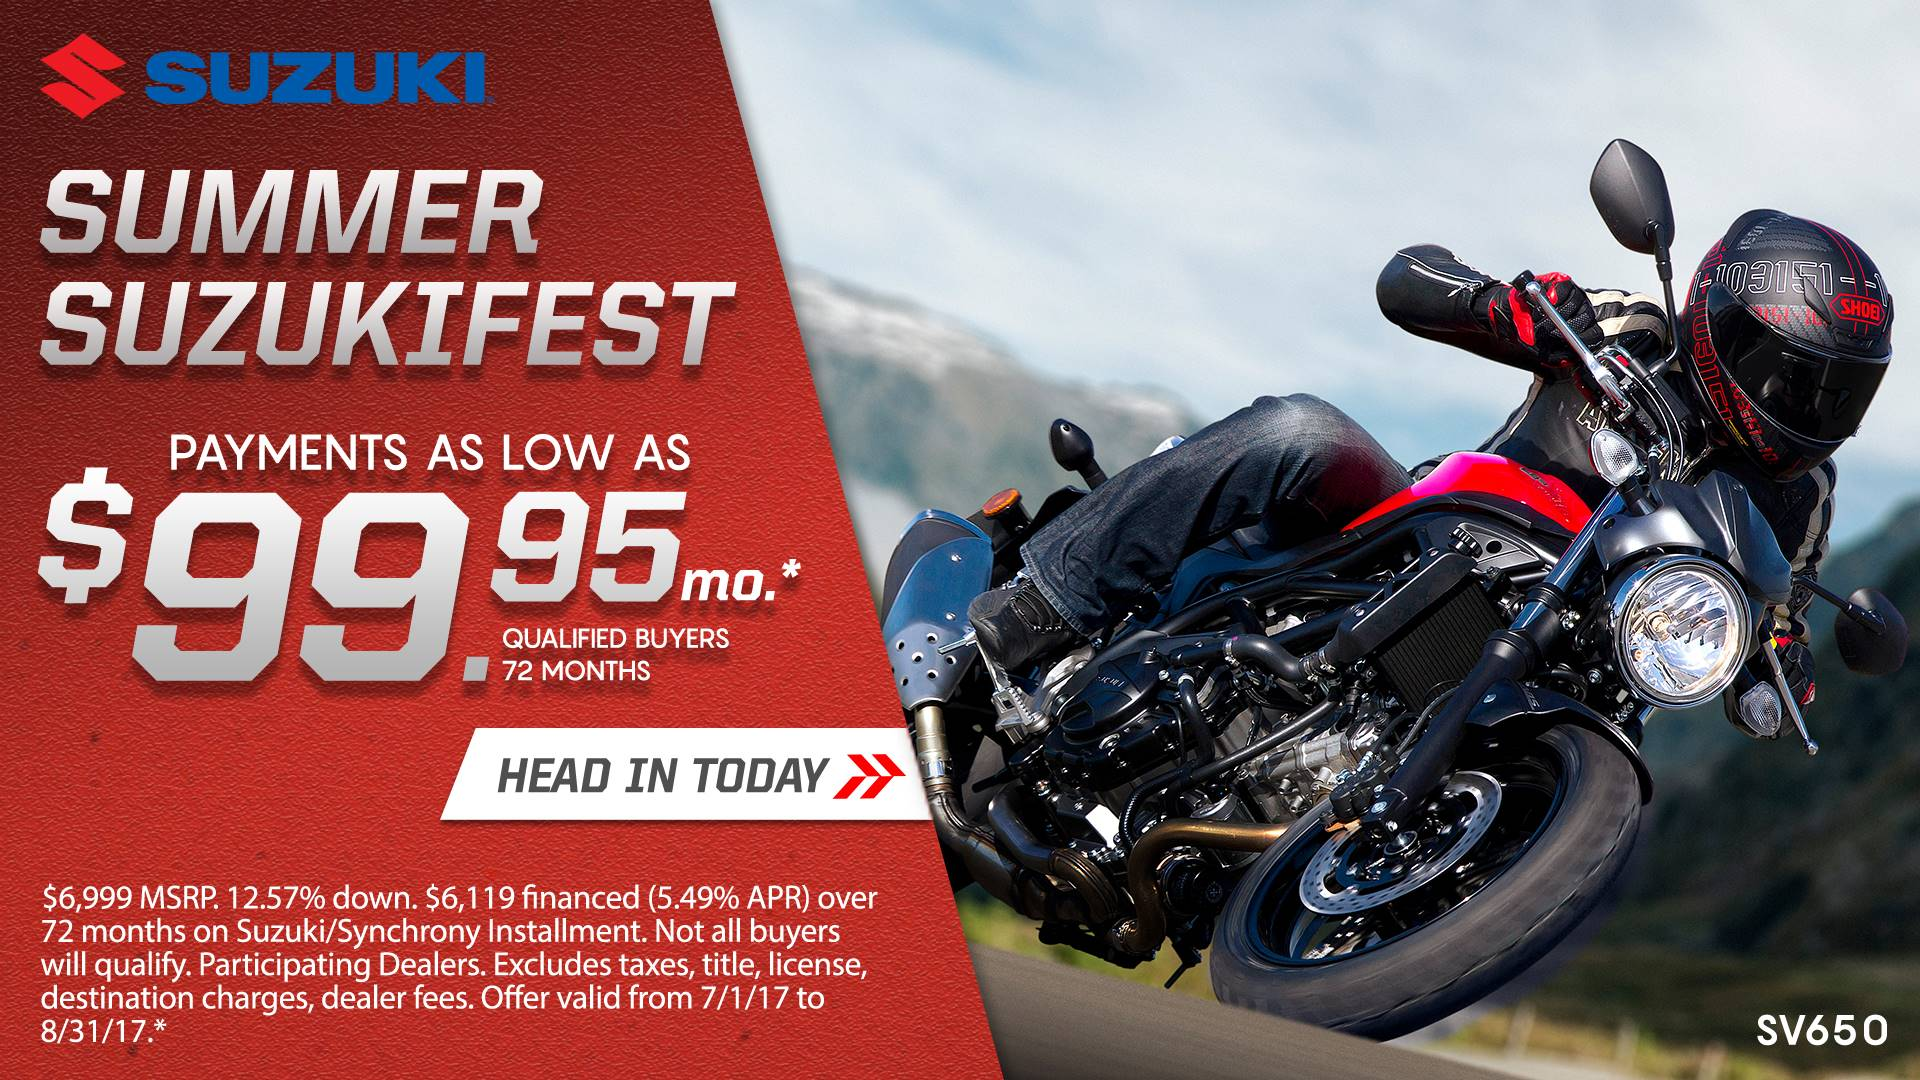 Suzuki Motor of America Inc. Suzuki Suzukifest Sportbike and Standard Motorcycle Financing as Low as 0% APR for 36 Months or Customer Cash Offer